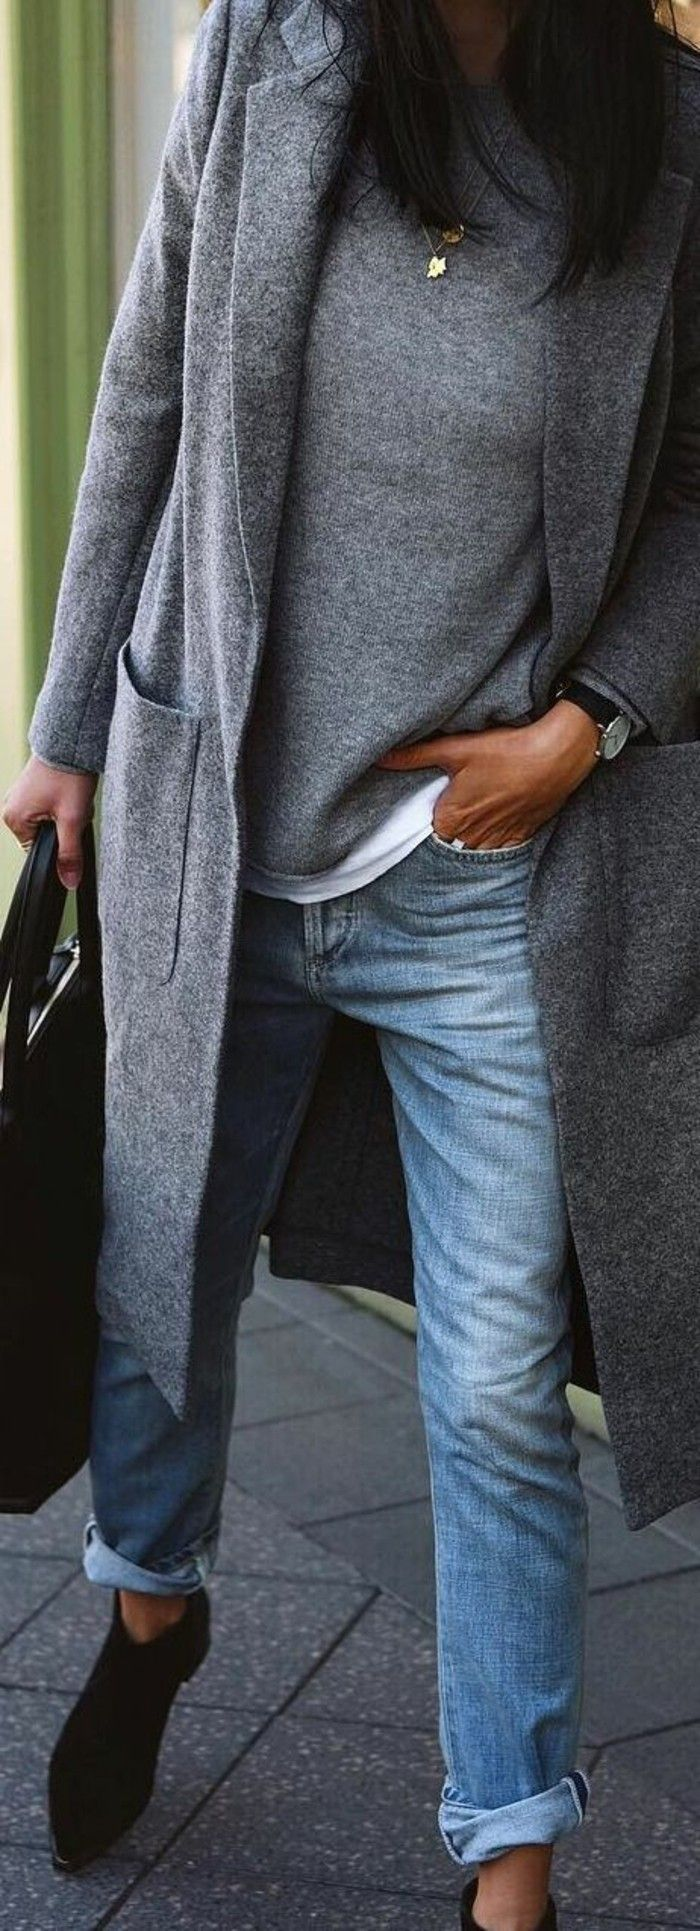 grey coat outfit winter fashion trends long coat